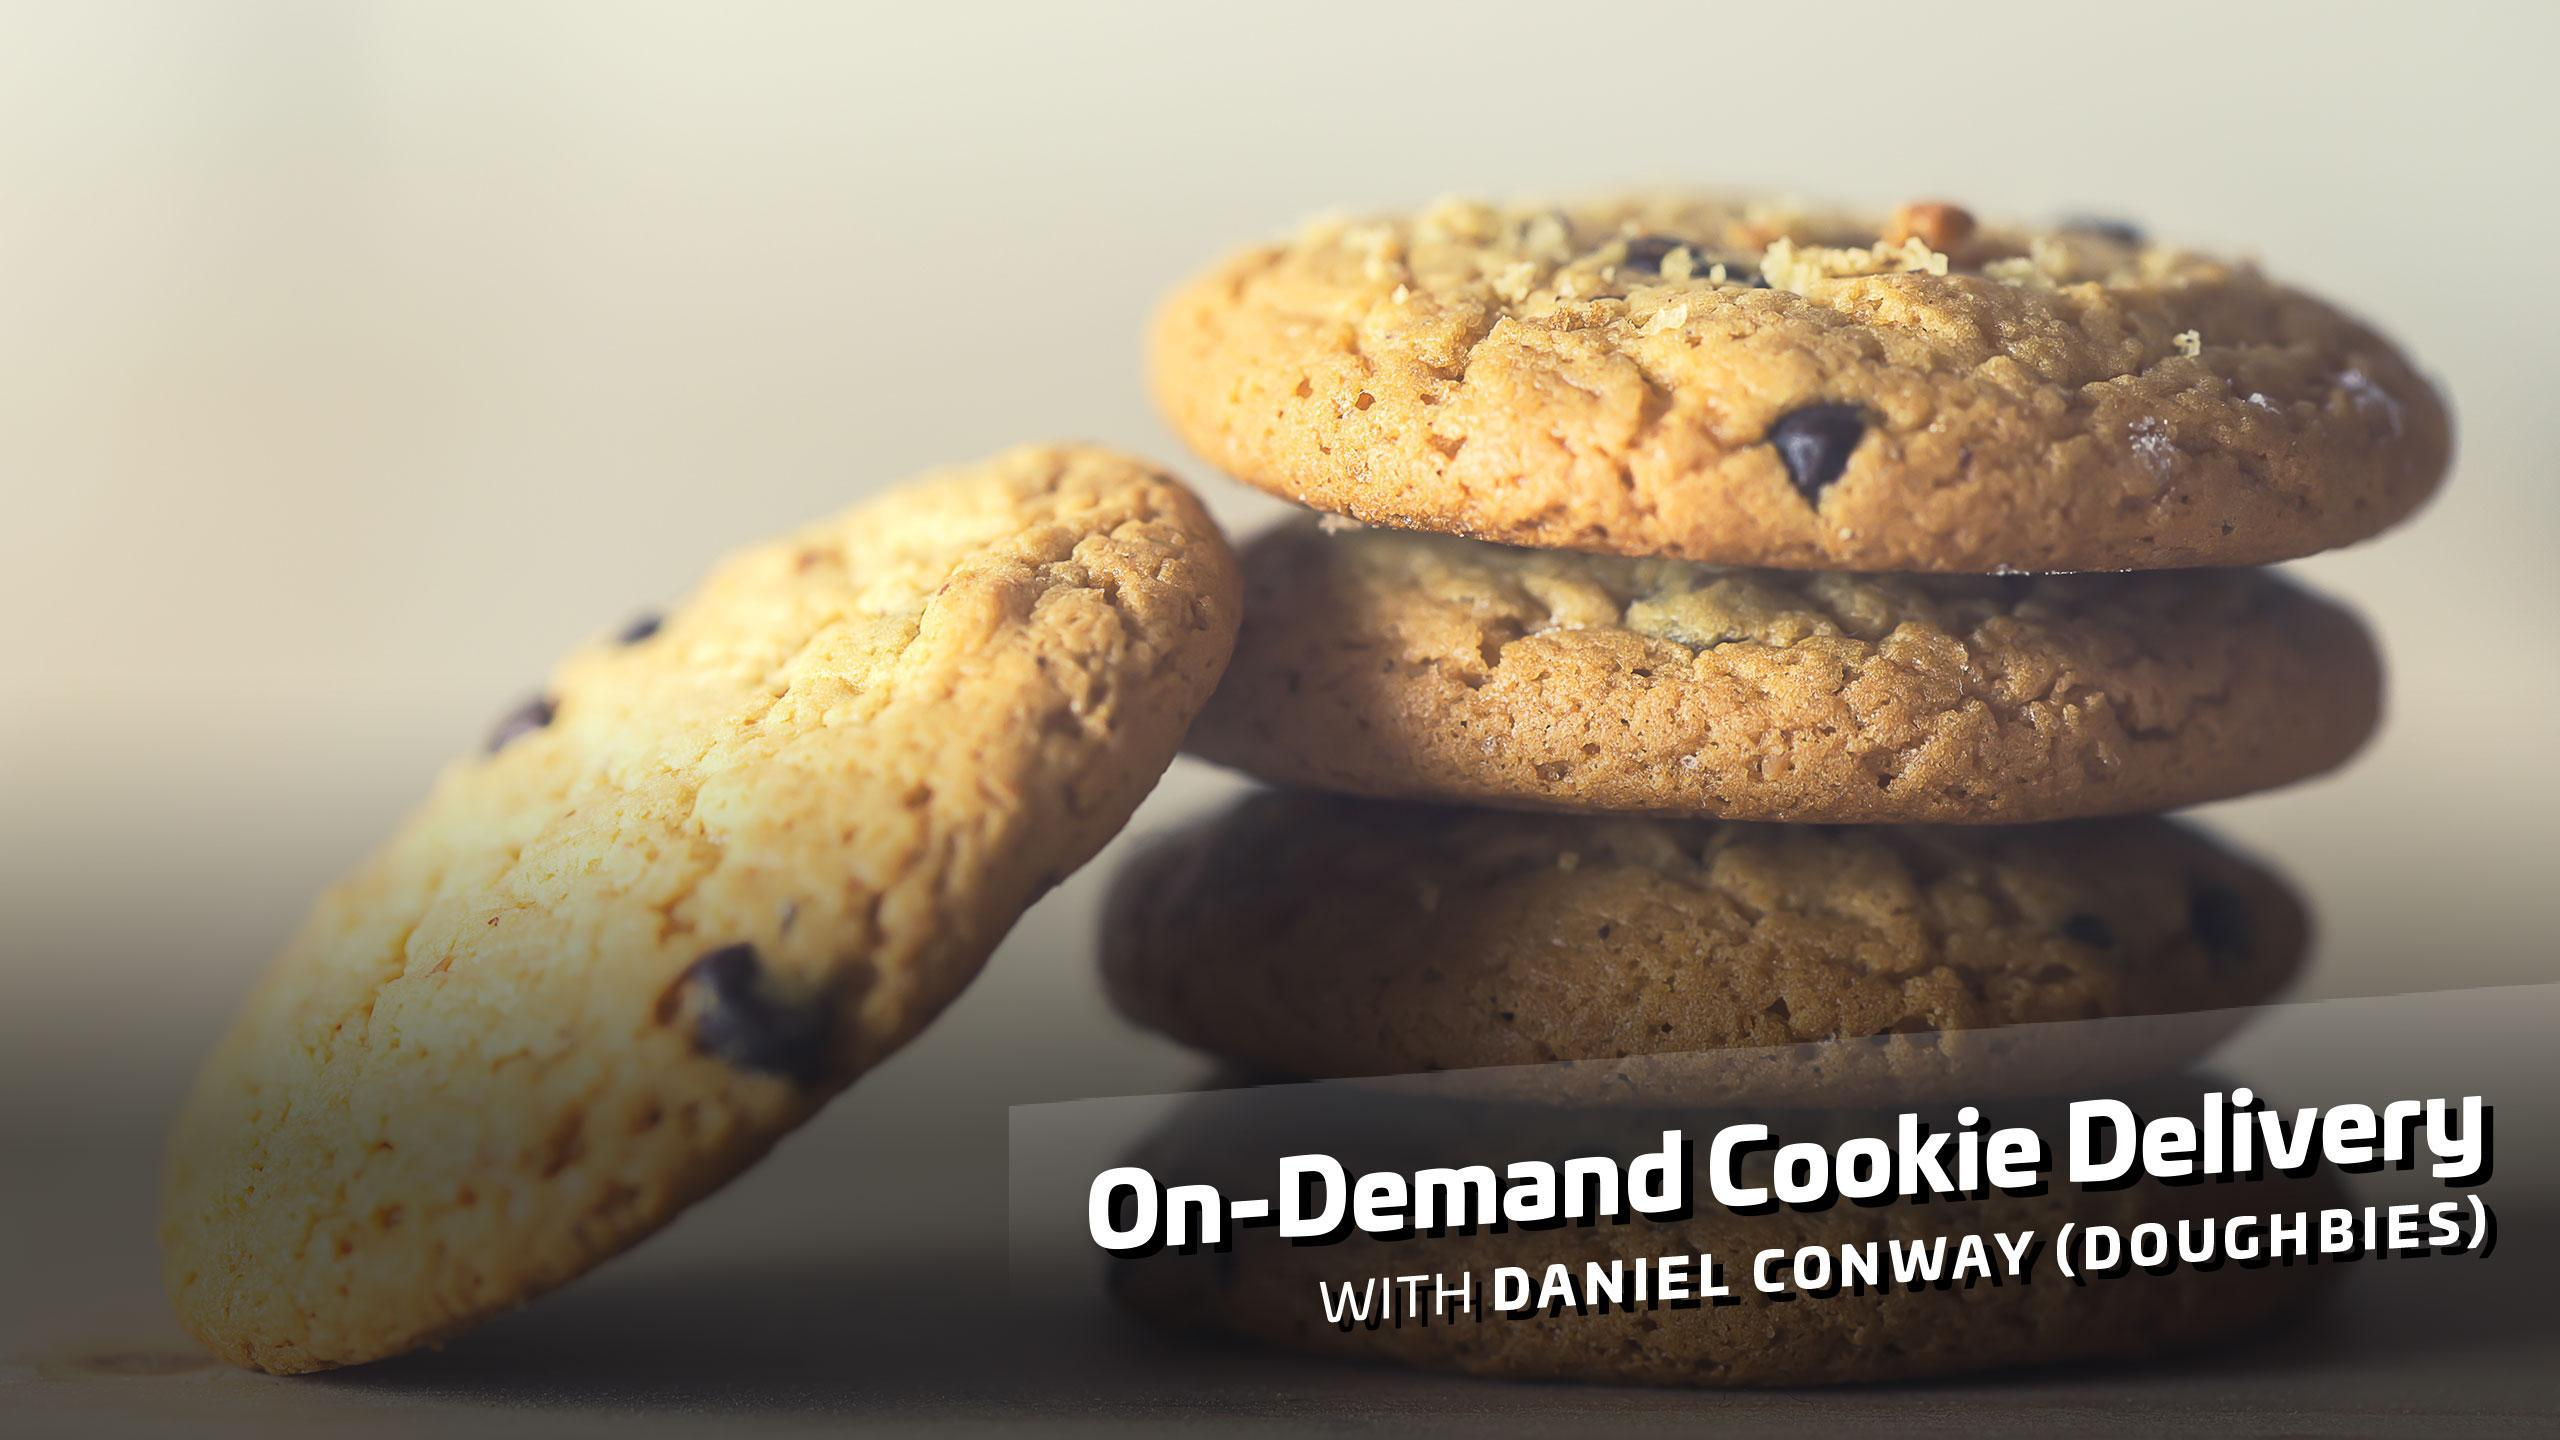 On-Demand Cookie Delivery